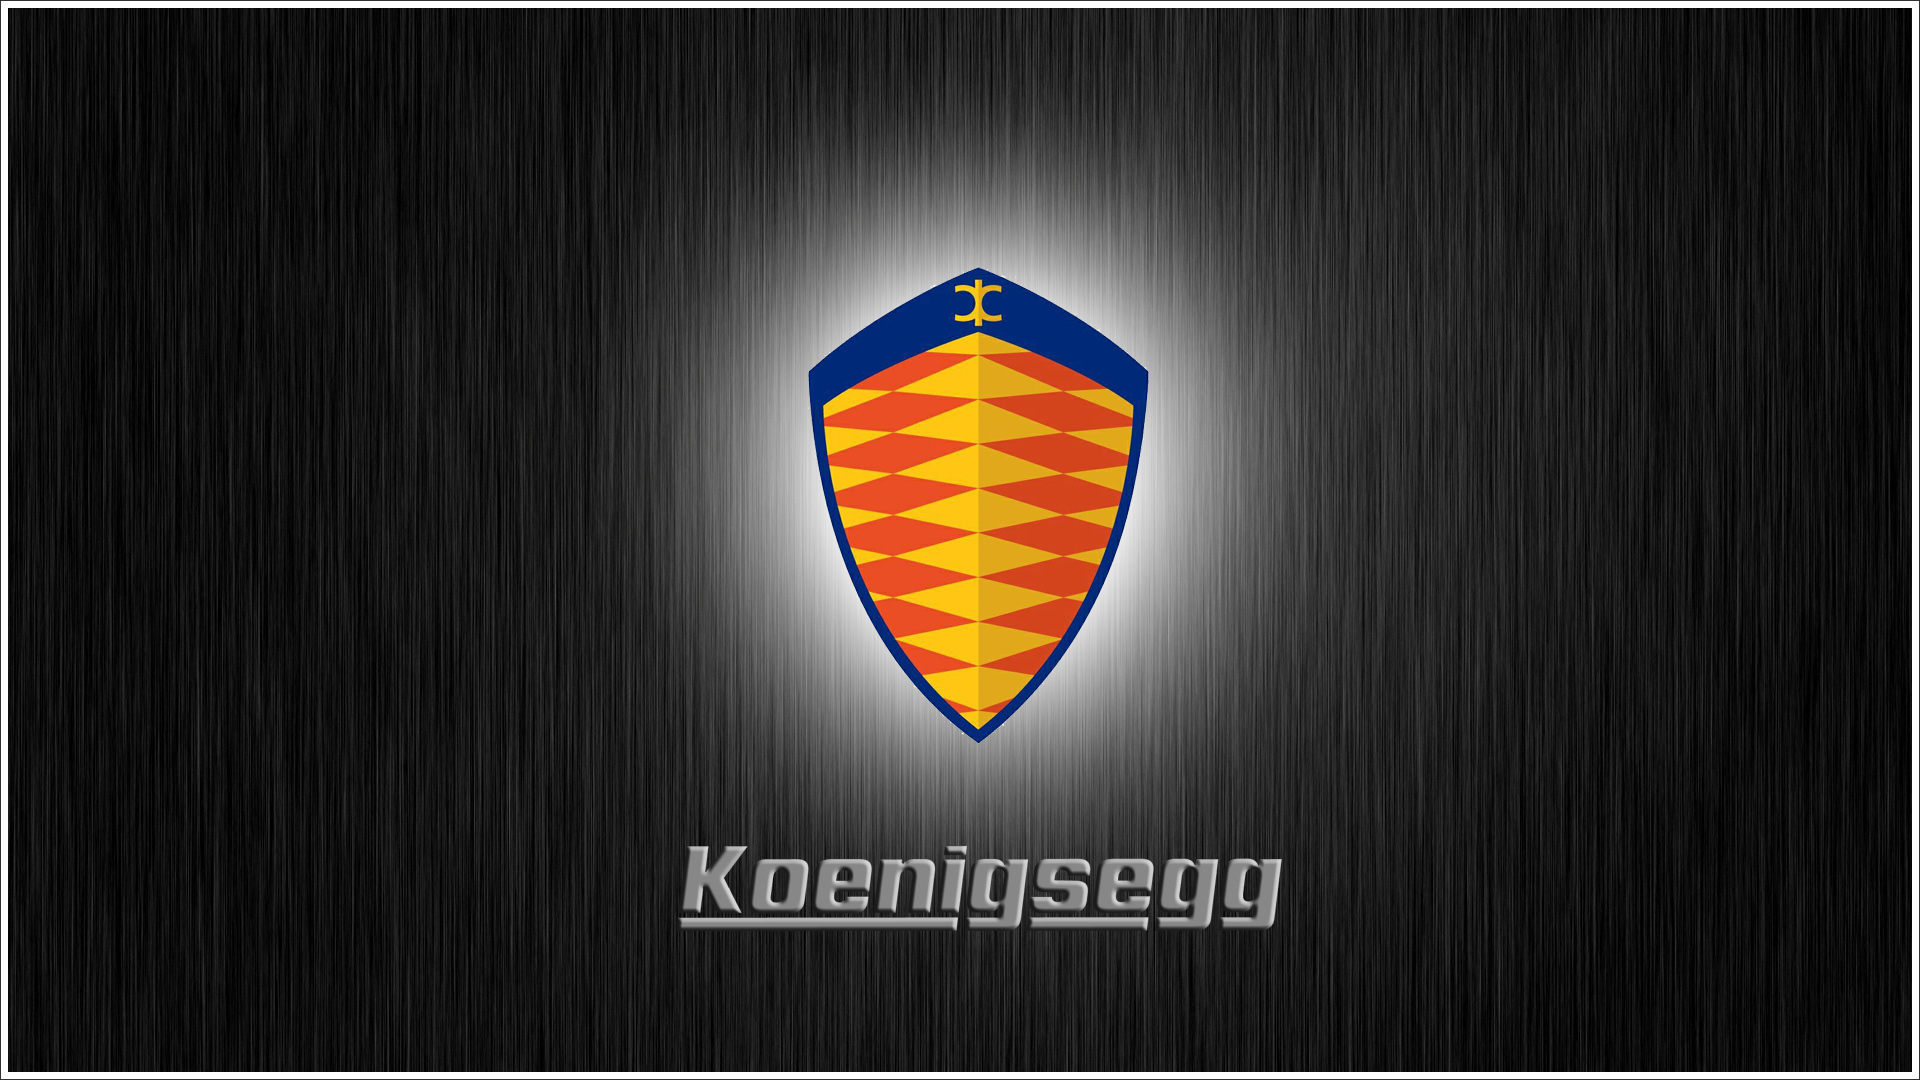 Ferrari Car Symbol Wallpaper Koenigsegg Emblem Logo Brands For Free Hd 3d